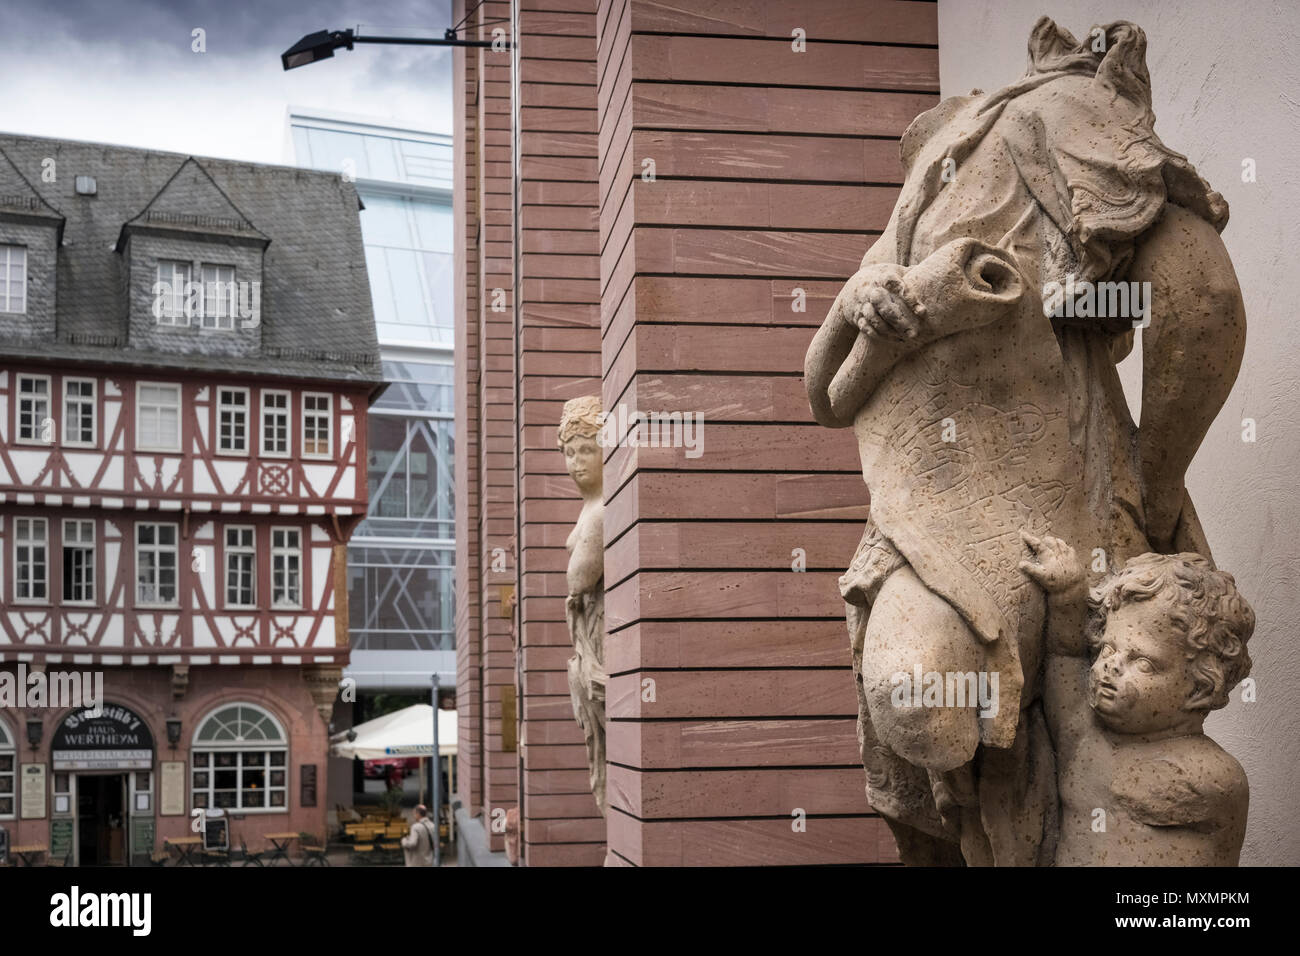 Sculptural artefacts displayed outside the new exhibition hall of the refubished Historical Museum, Romerberg, Frankfurt am Main, Hesse, Germany - Stock Image